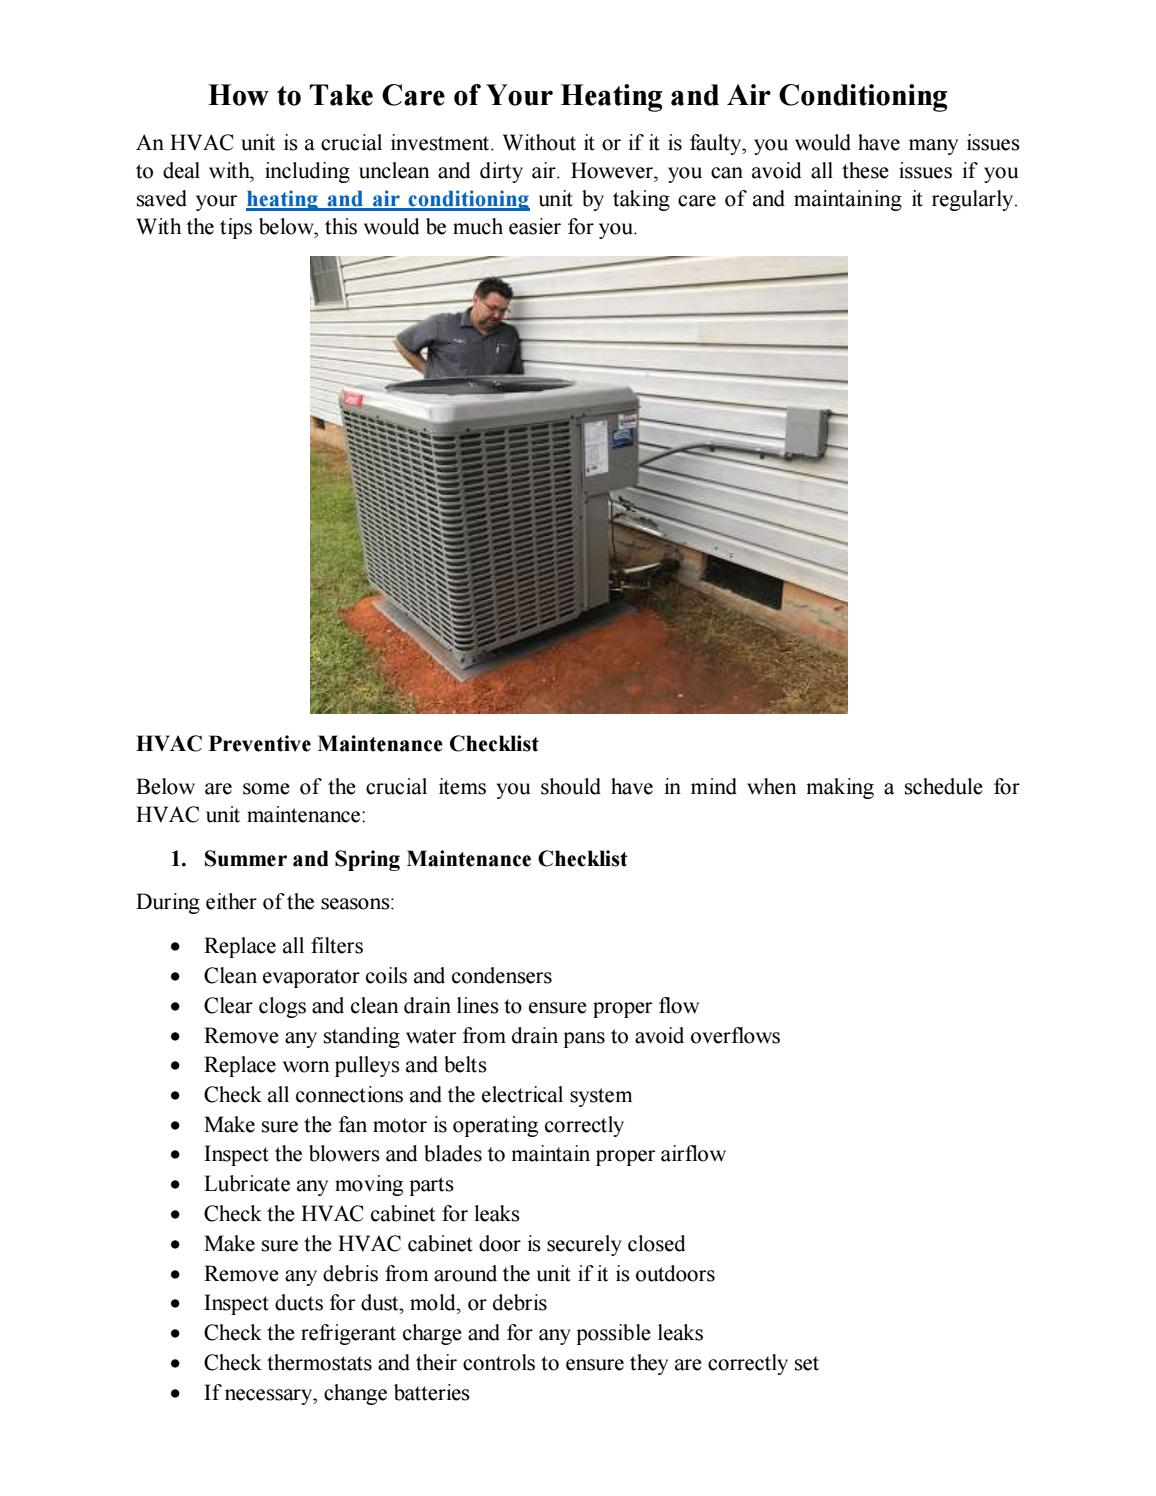 Take Care of Your Heating and Air Conditioning